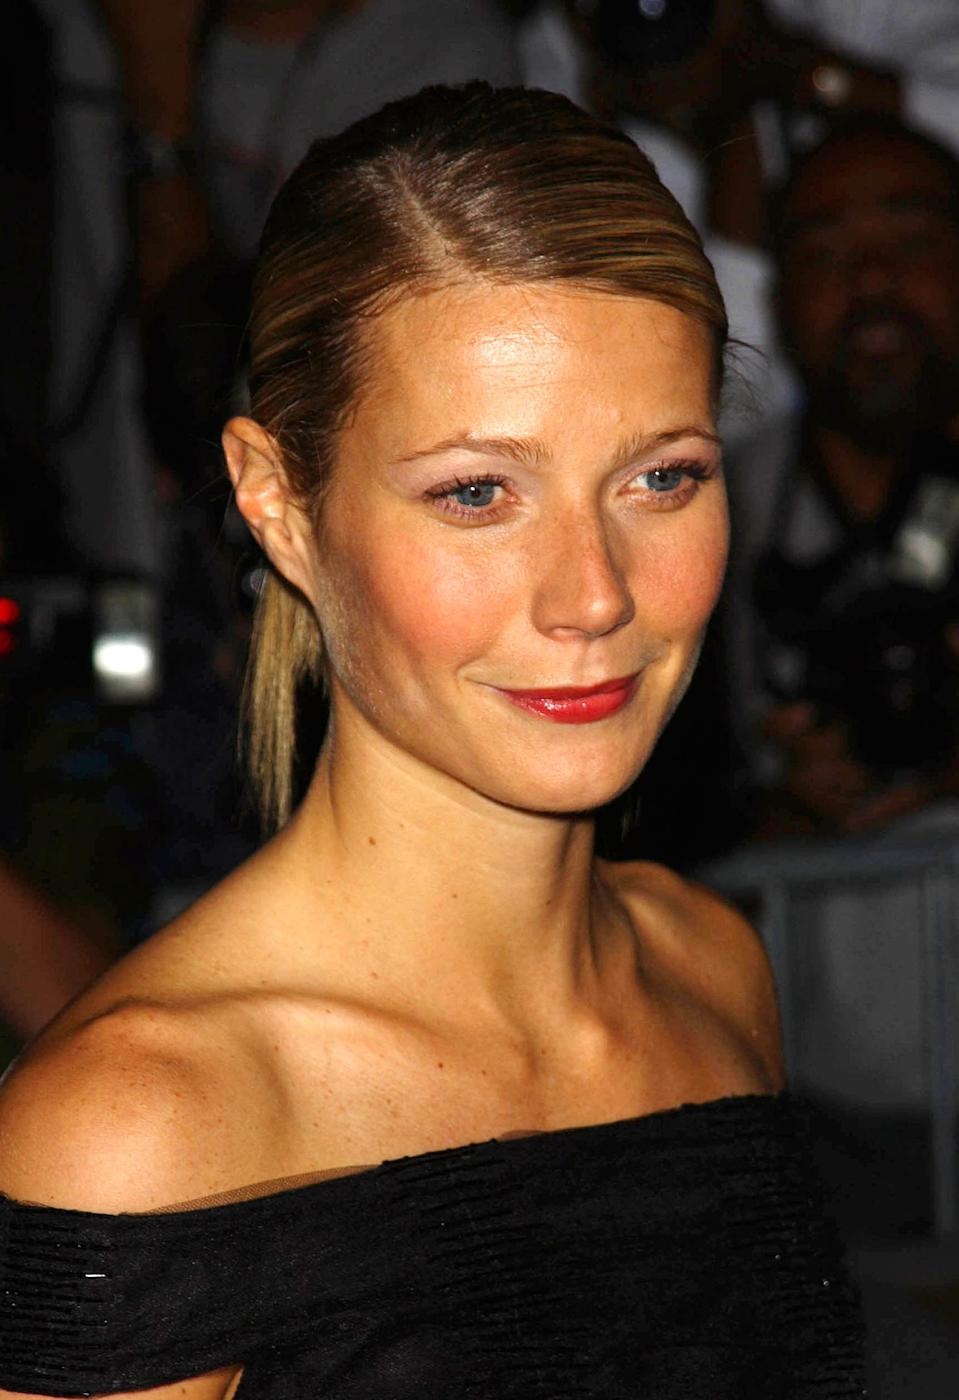 Photo by: Peter Kramer STAR MAX, Inc. - copyright 2002 ALL RIGHTS RESERVED Telephone/Fax: (212) 995-1196 9/17/02 Gwyneth Paltrow attending Fashion Week. (NYC) (Star Max via AP Images)